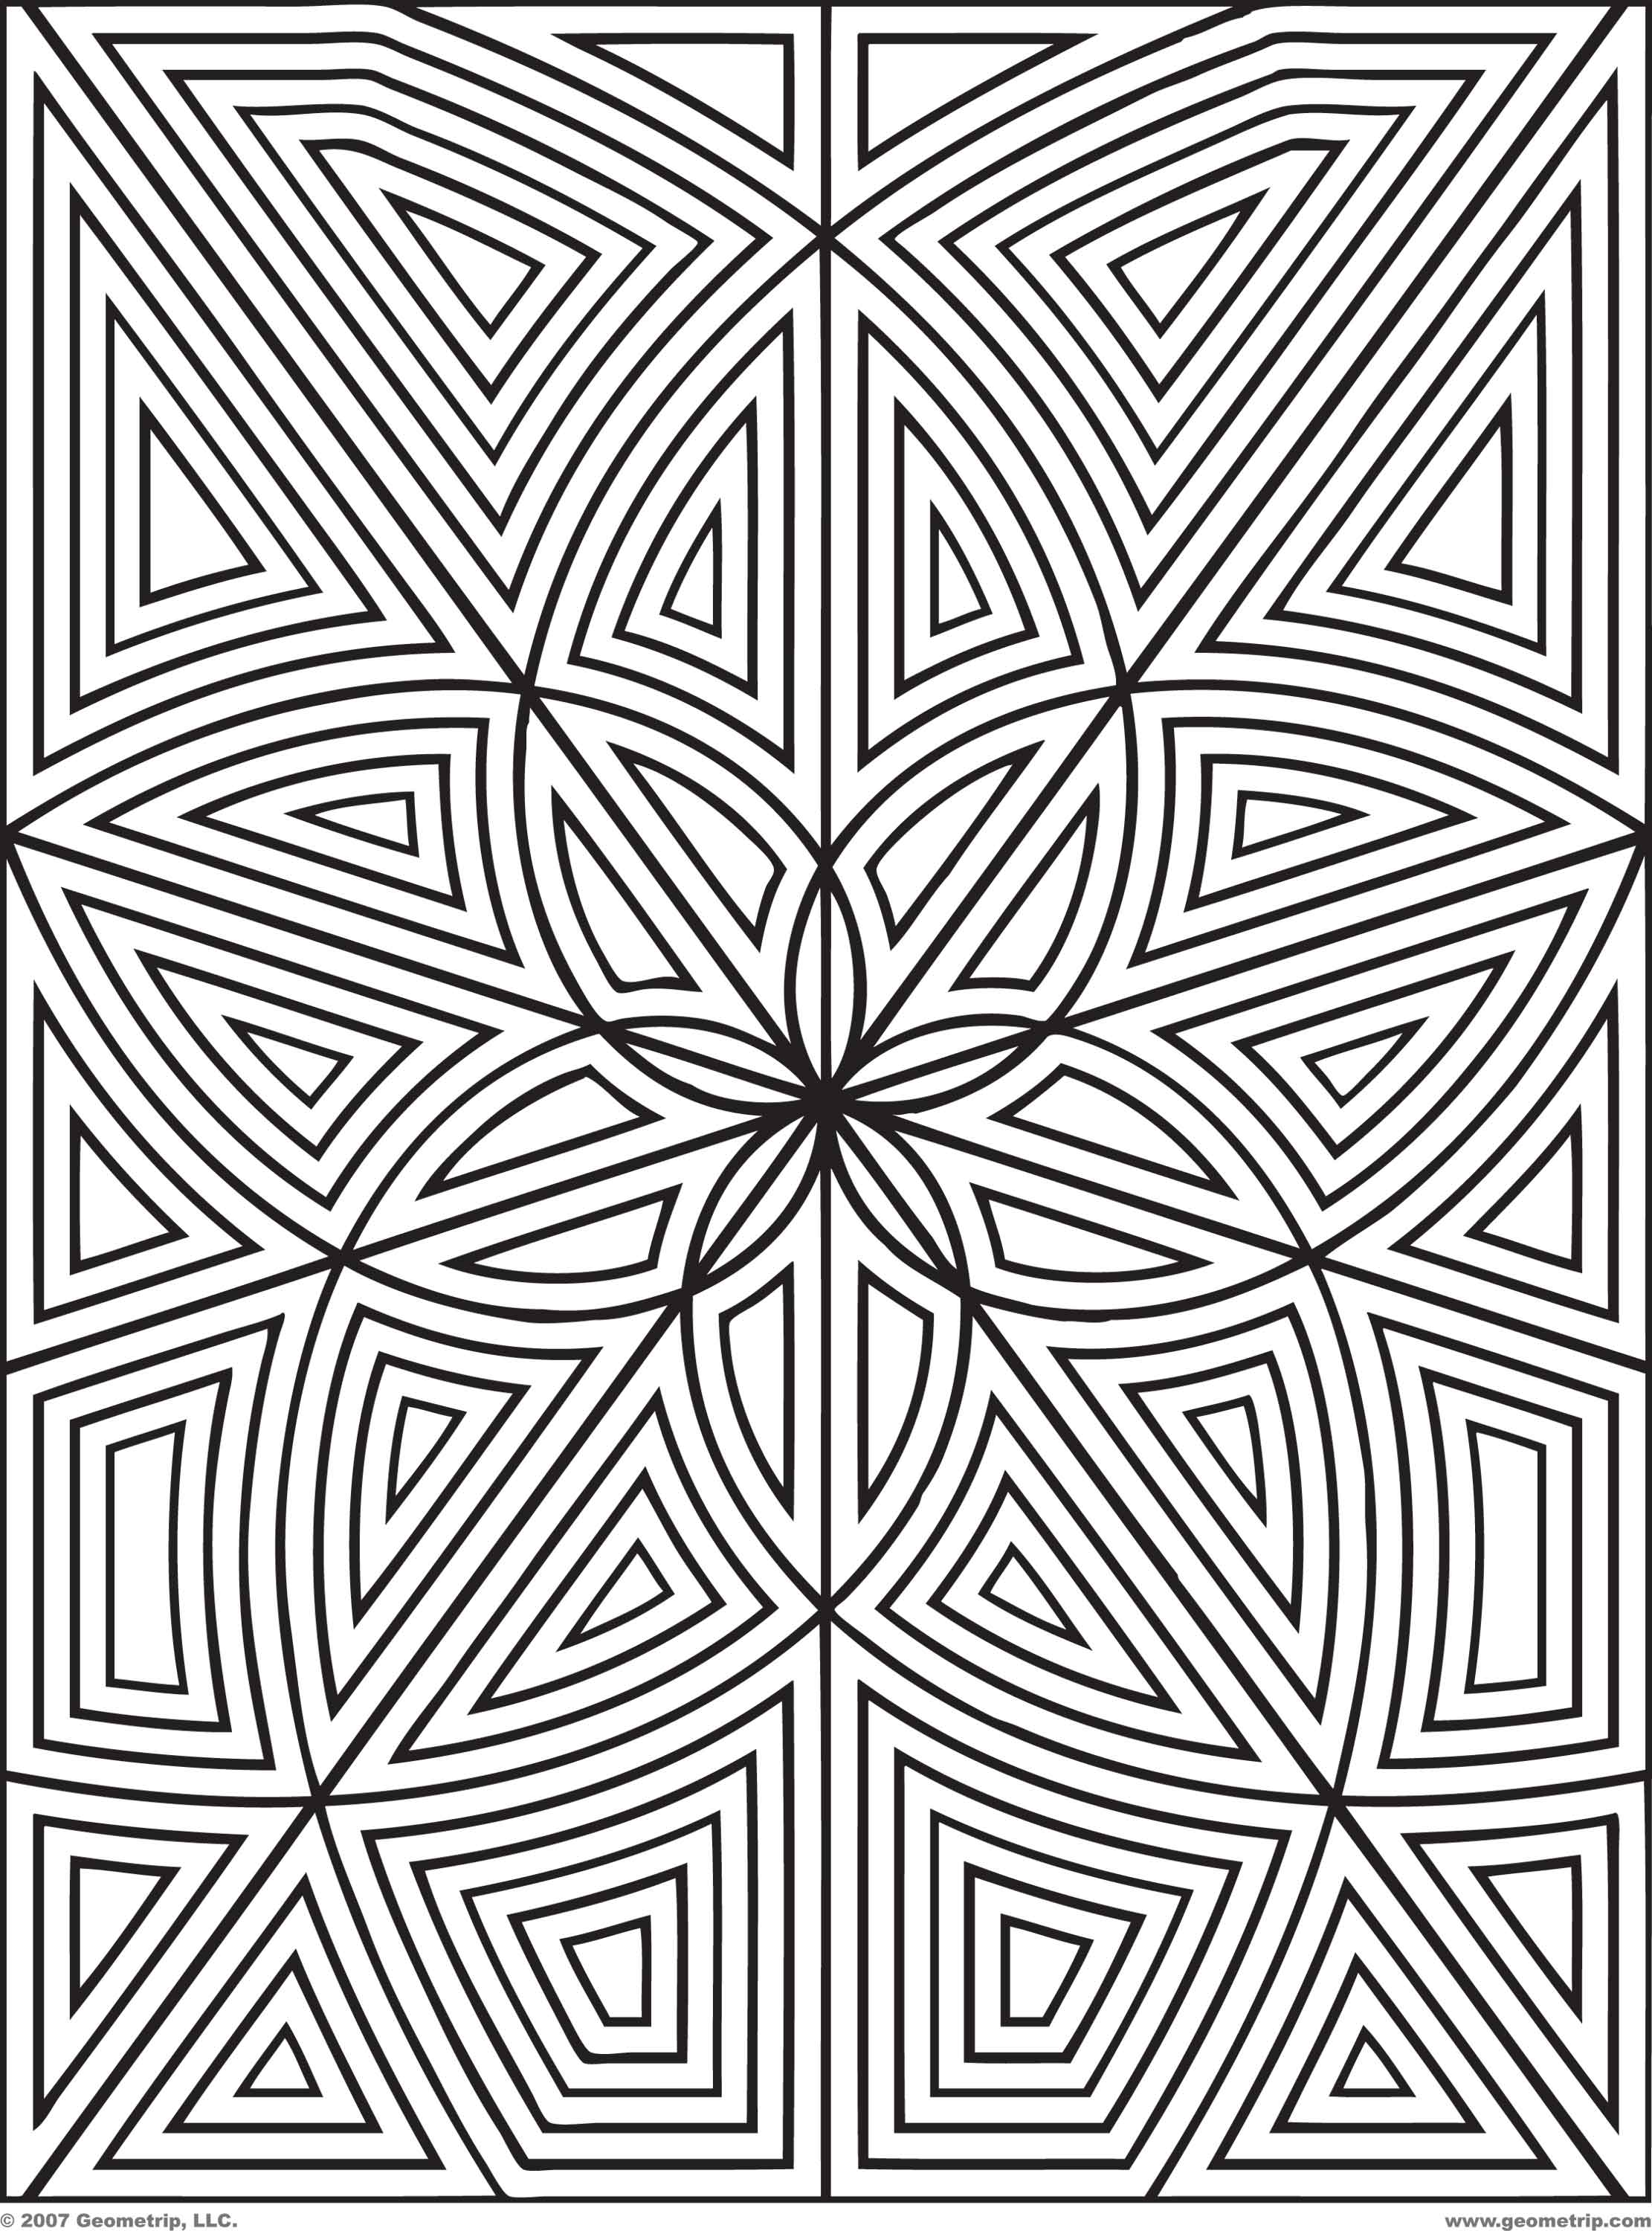 Printable coloring pages geometric patterns - Geometric Flower Coloring Pages Advanced Coloring Pages Geometric